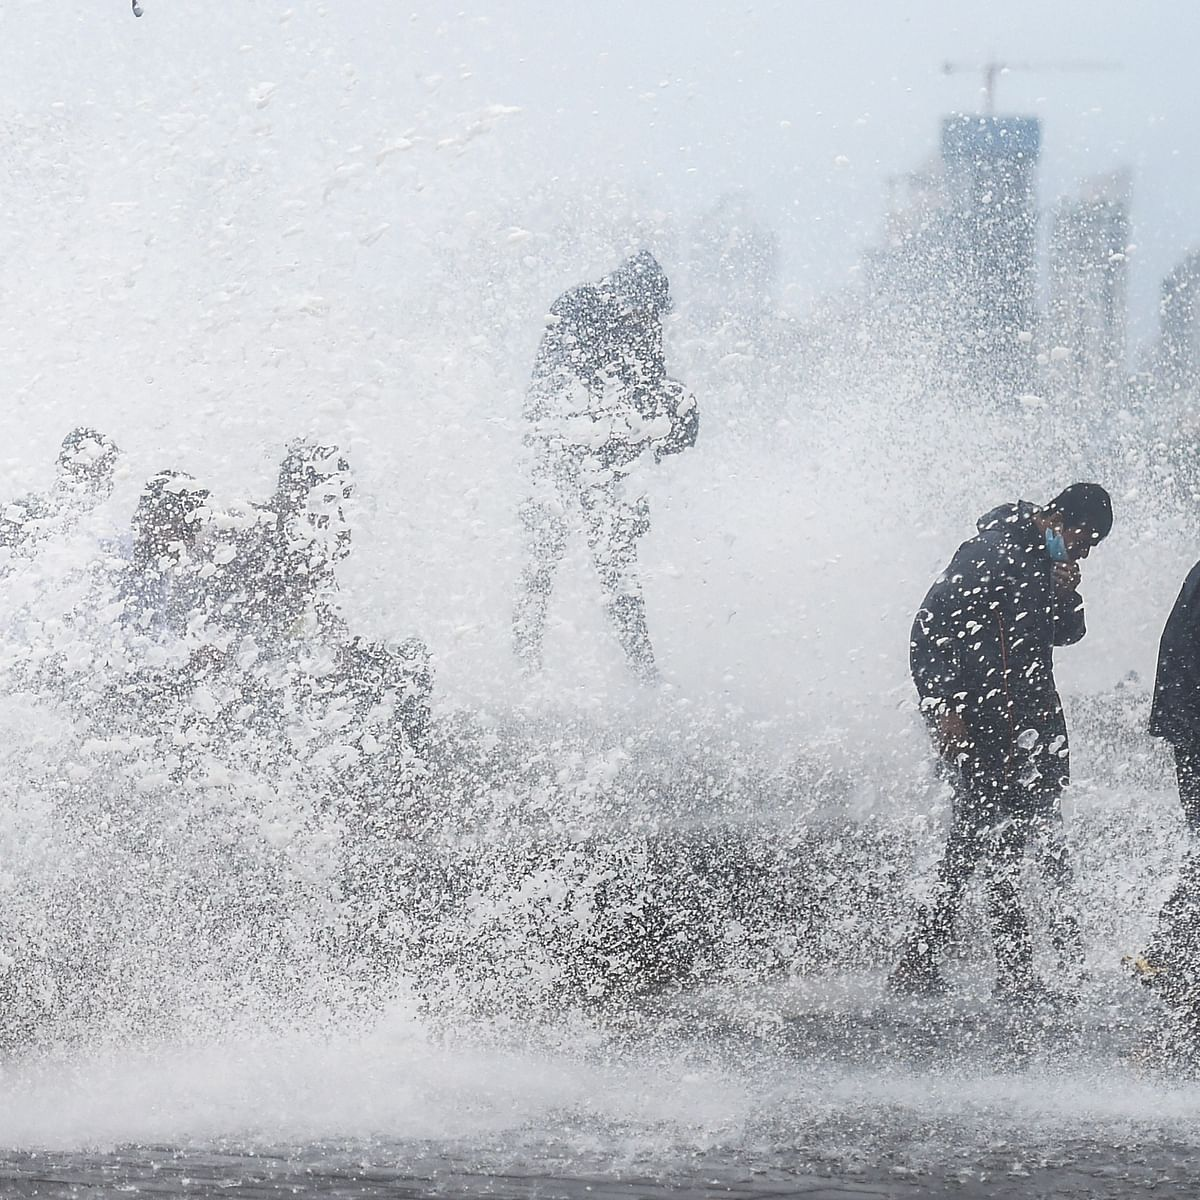 Mumbai weather update: City wakes up to light rainfall; IMD predicts very heavy spells at isolated places